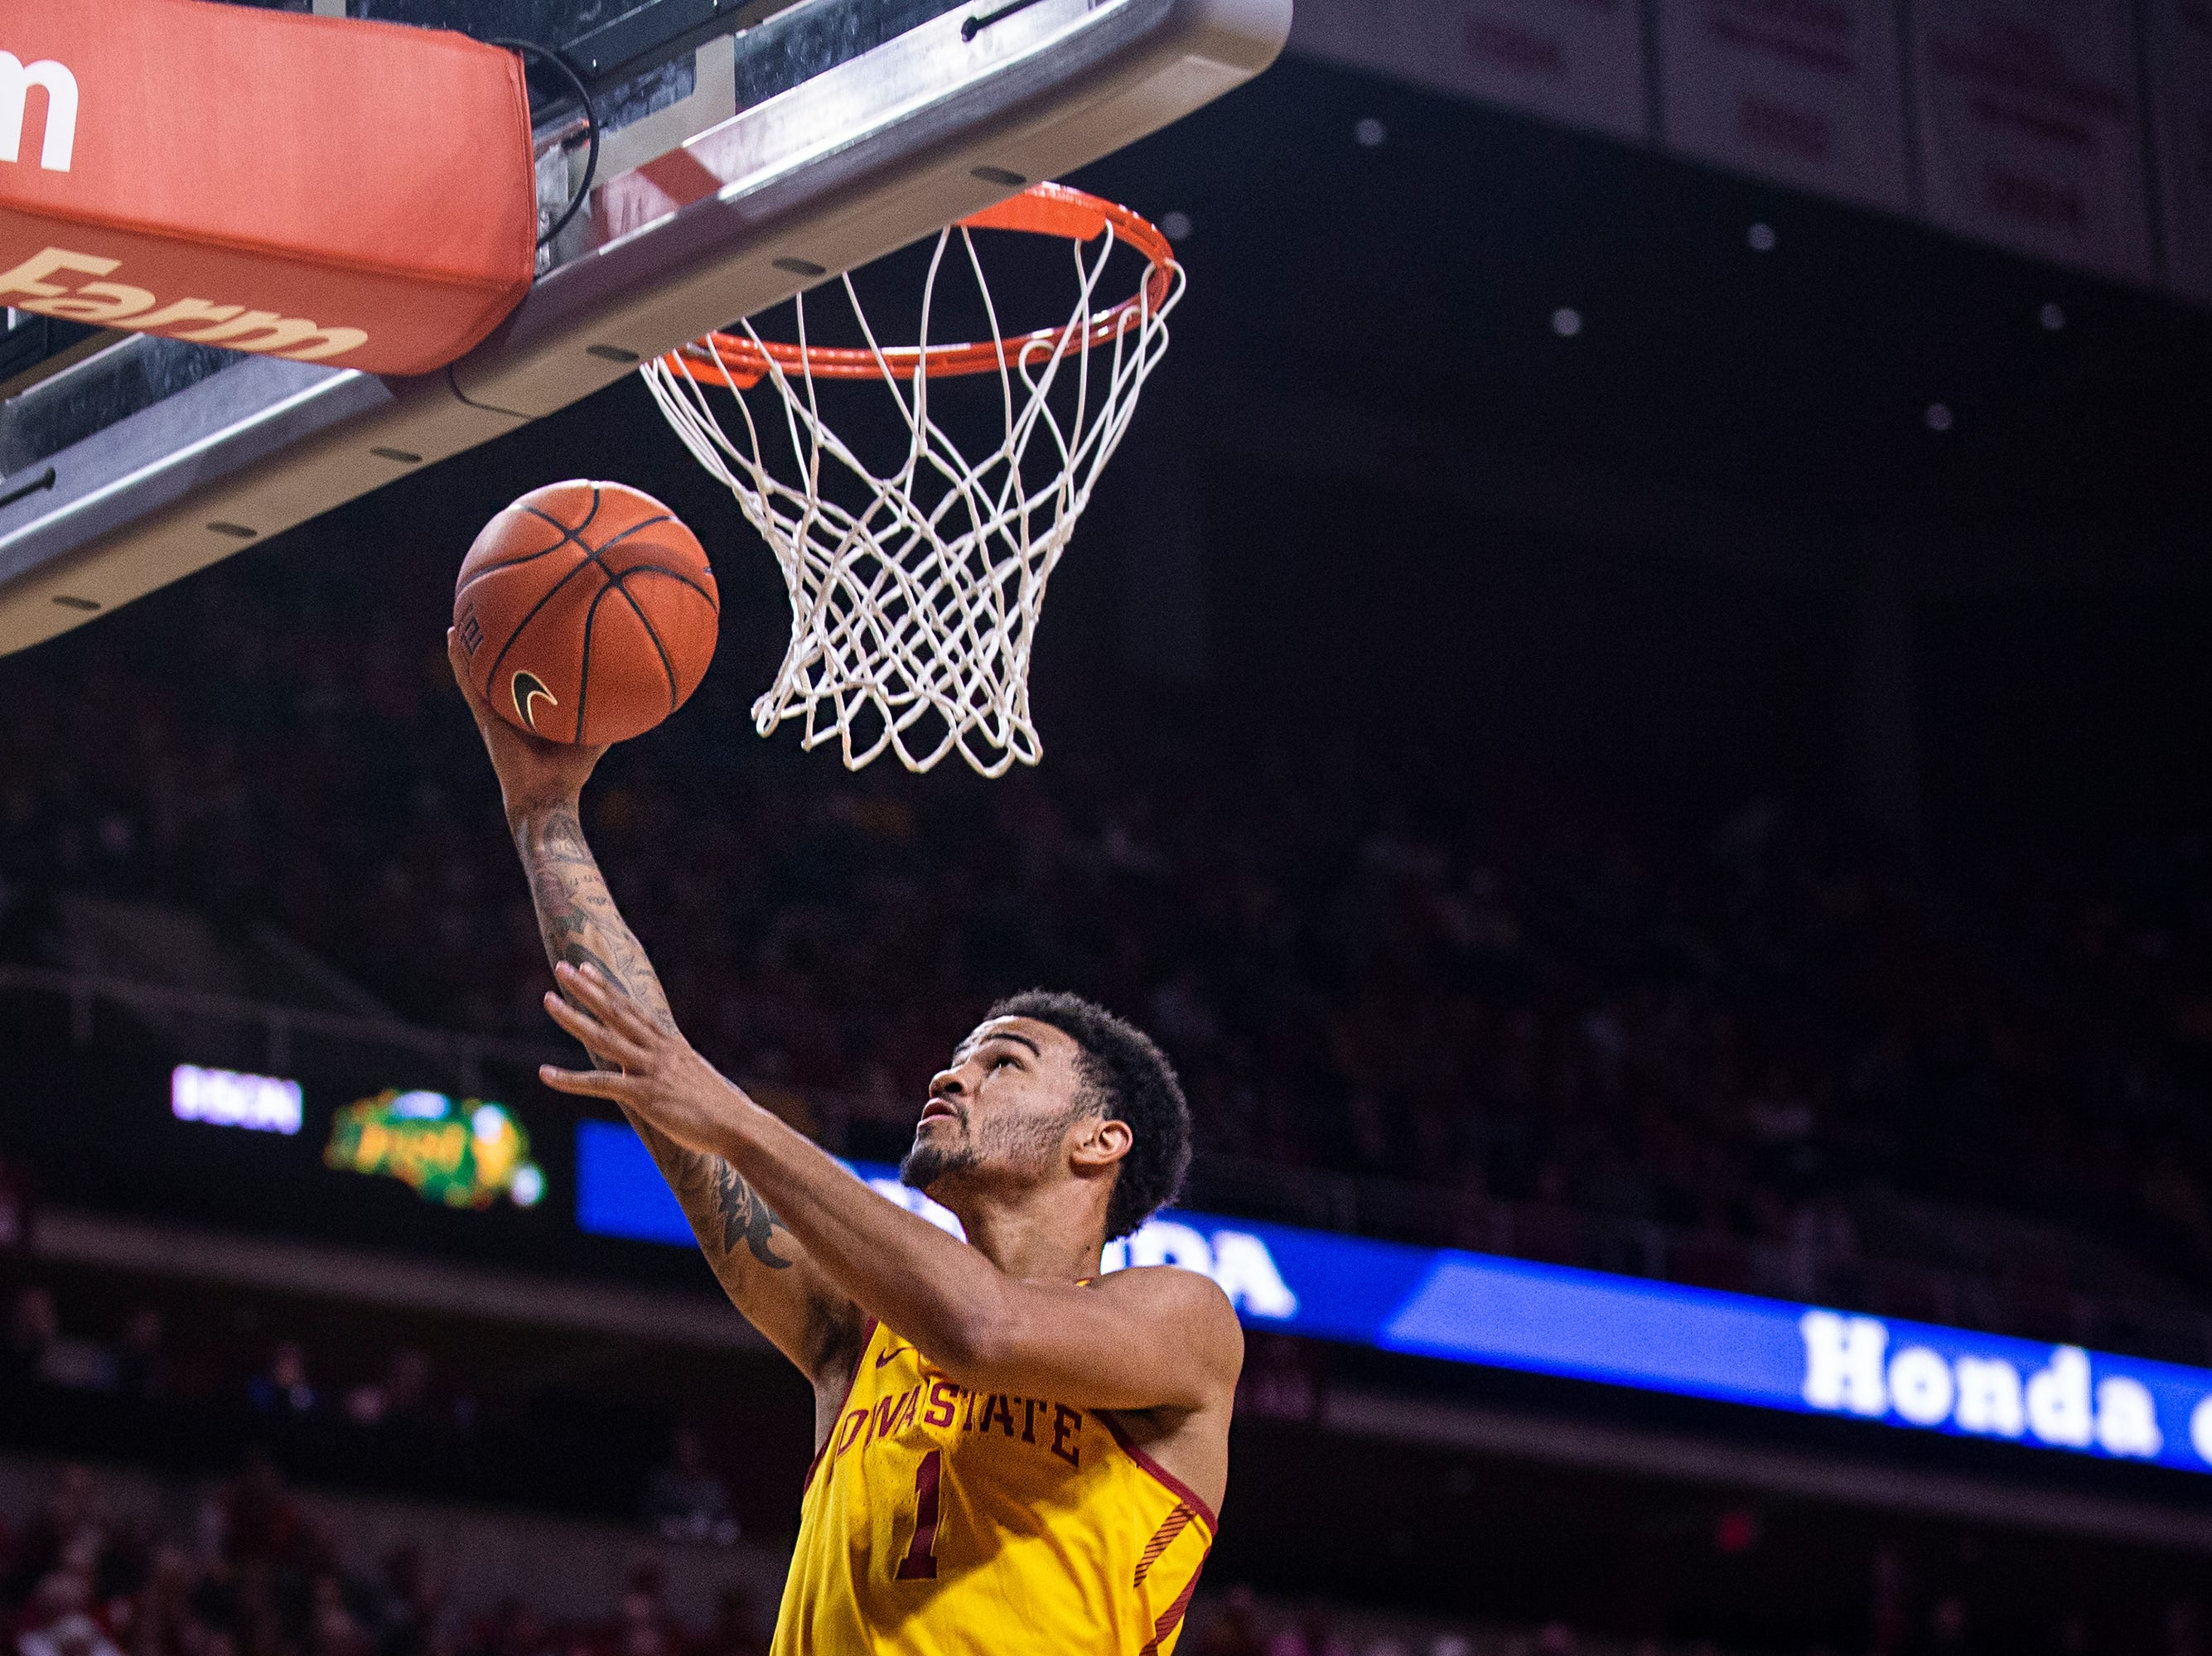 Iowa State's Nick Weiler-Babb shoots the ball during the Iowa State men's basketball game against North Dakota State University on Monday, Dec. 3, 2018, in Hilton Coliseum.